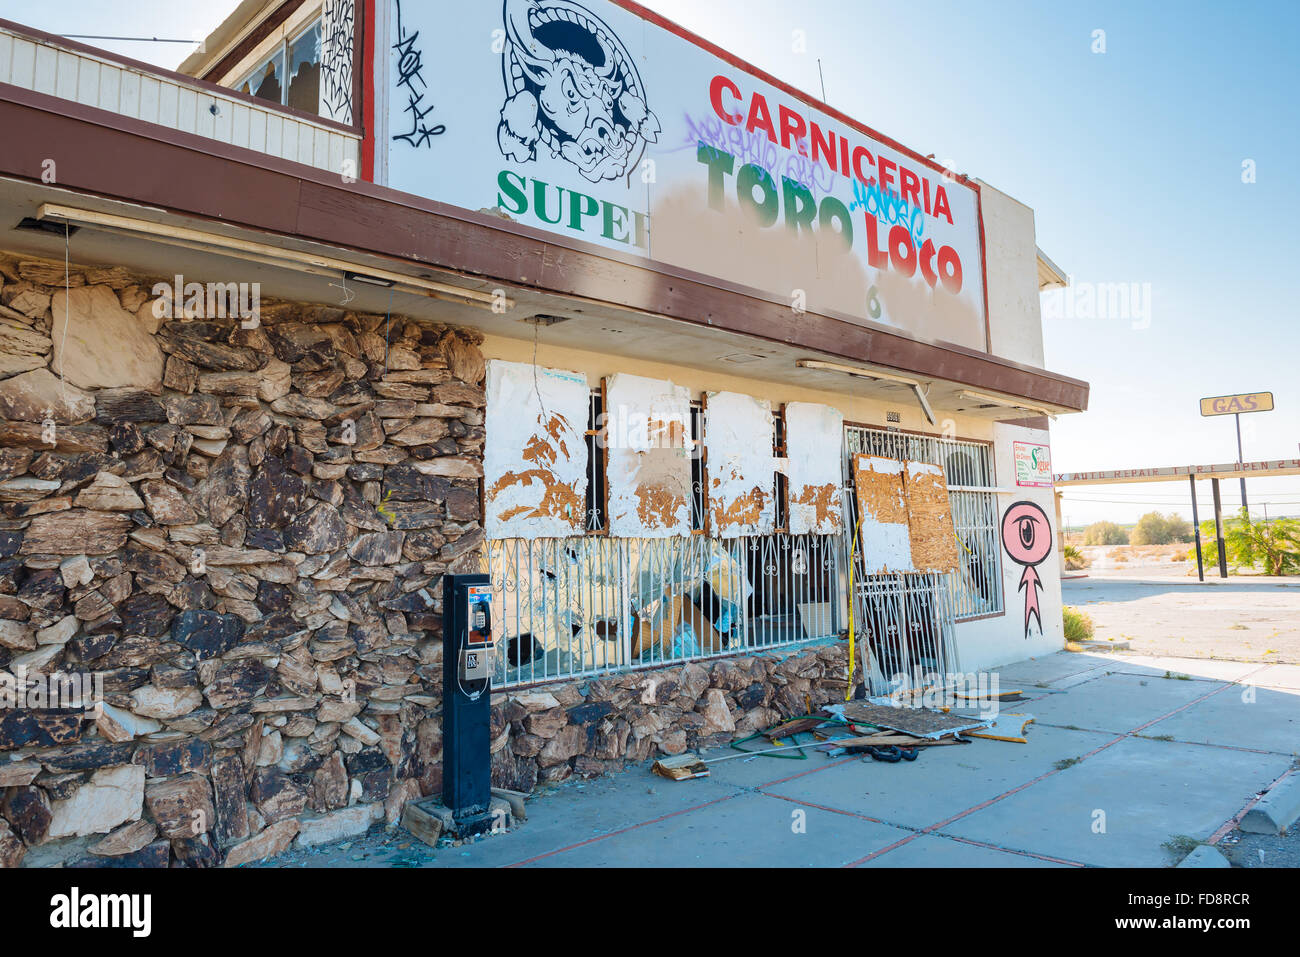 An abandoned building in the town of North Shore, California, on the northeast shore of the Salton Sea - Stock Image